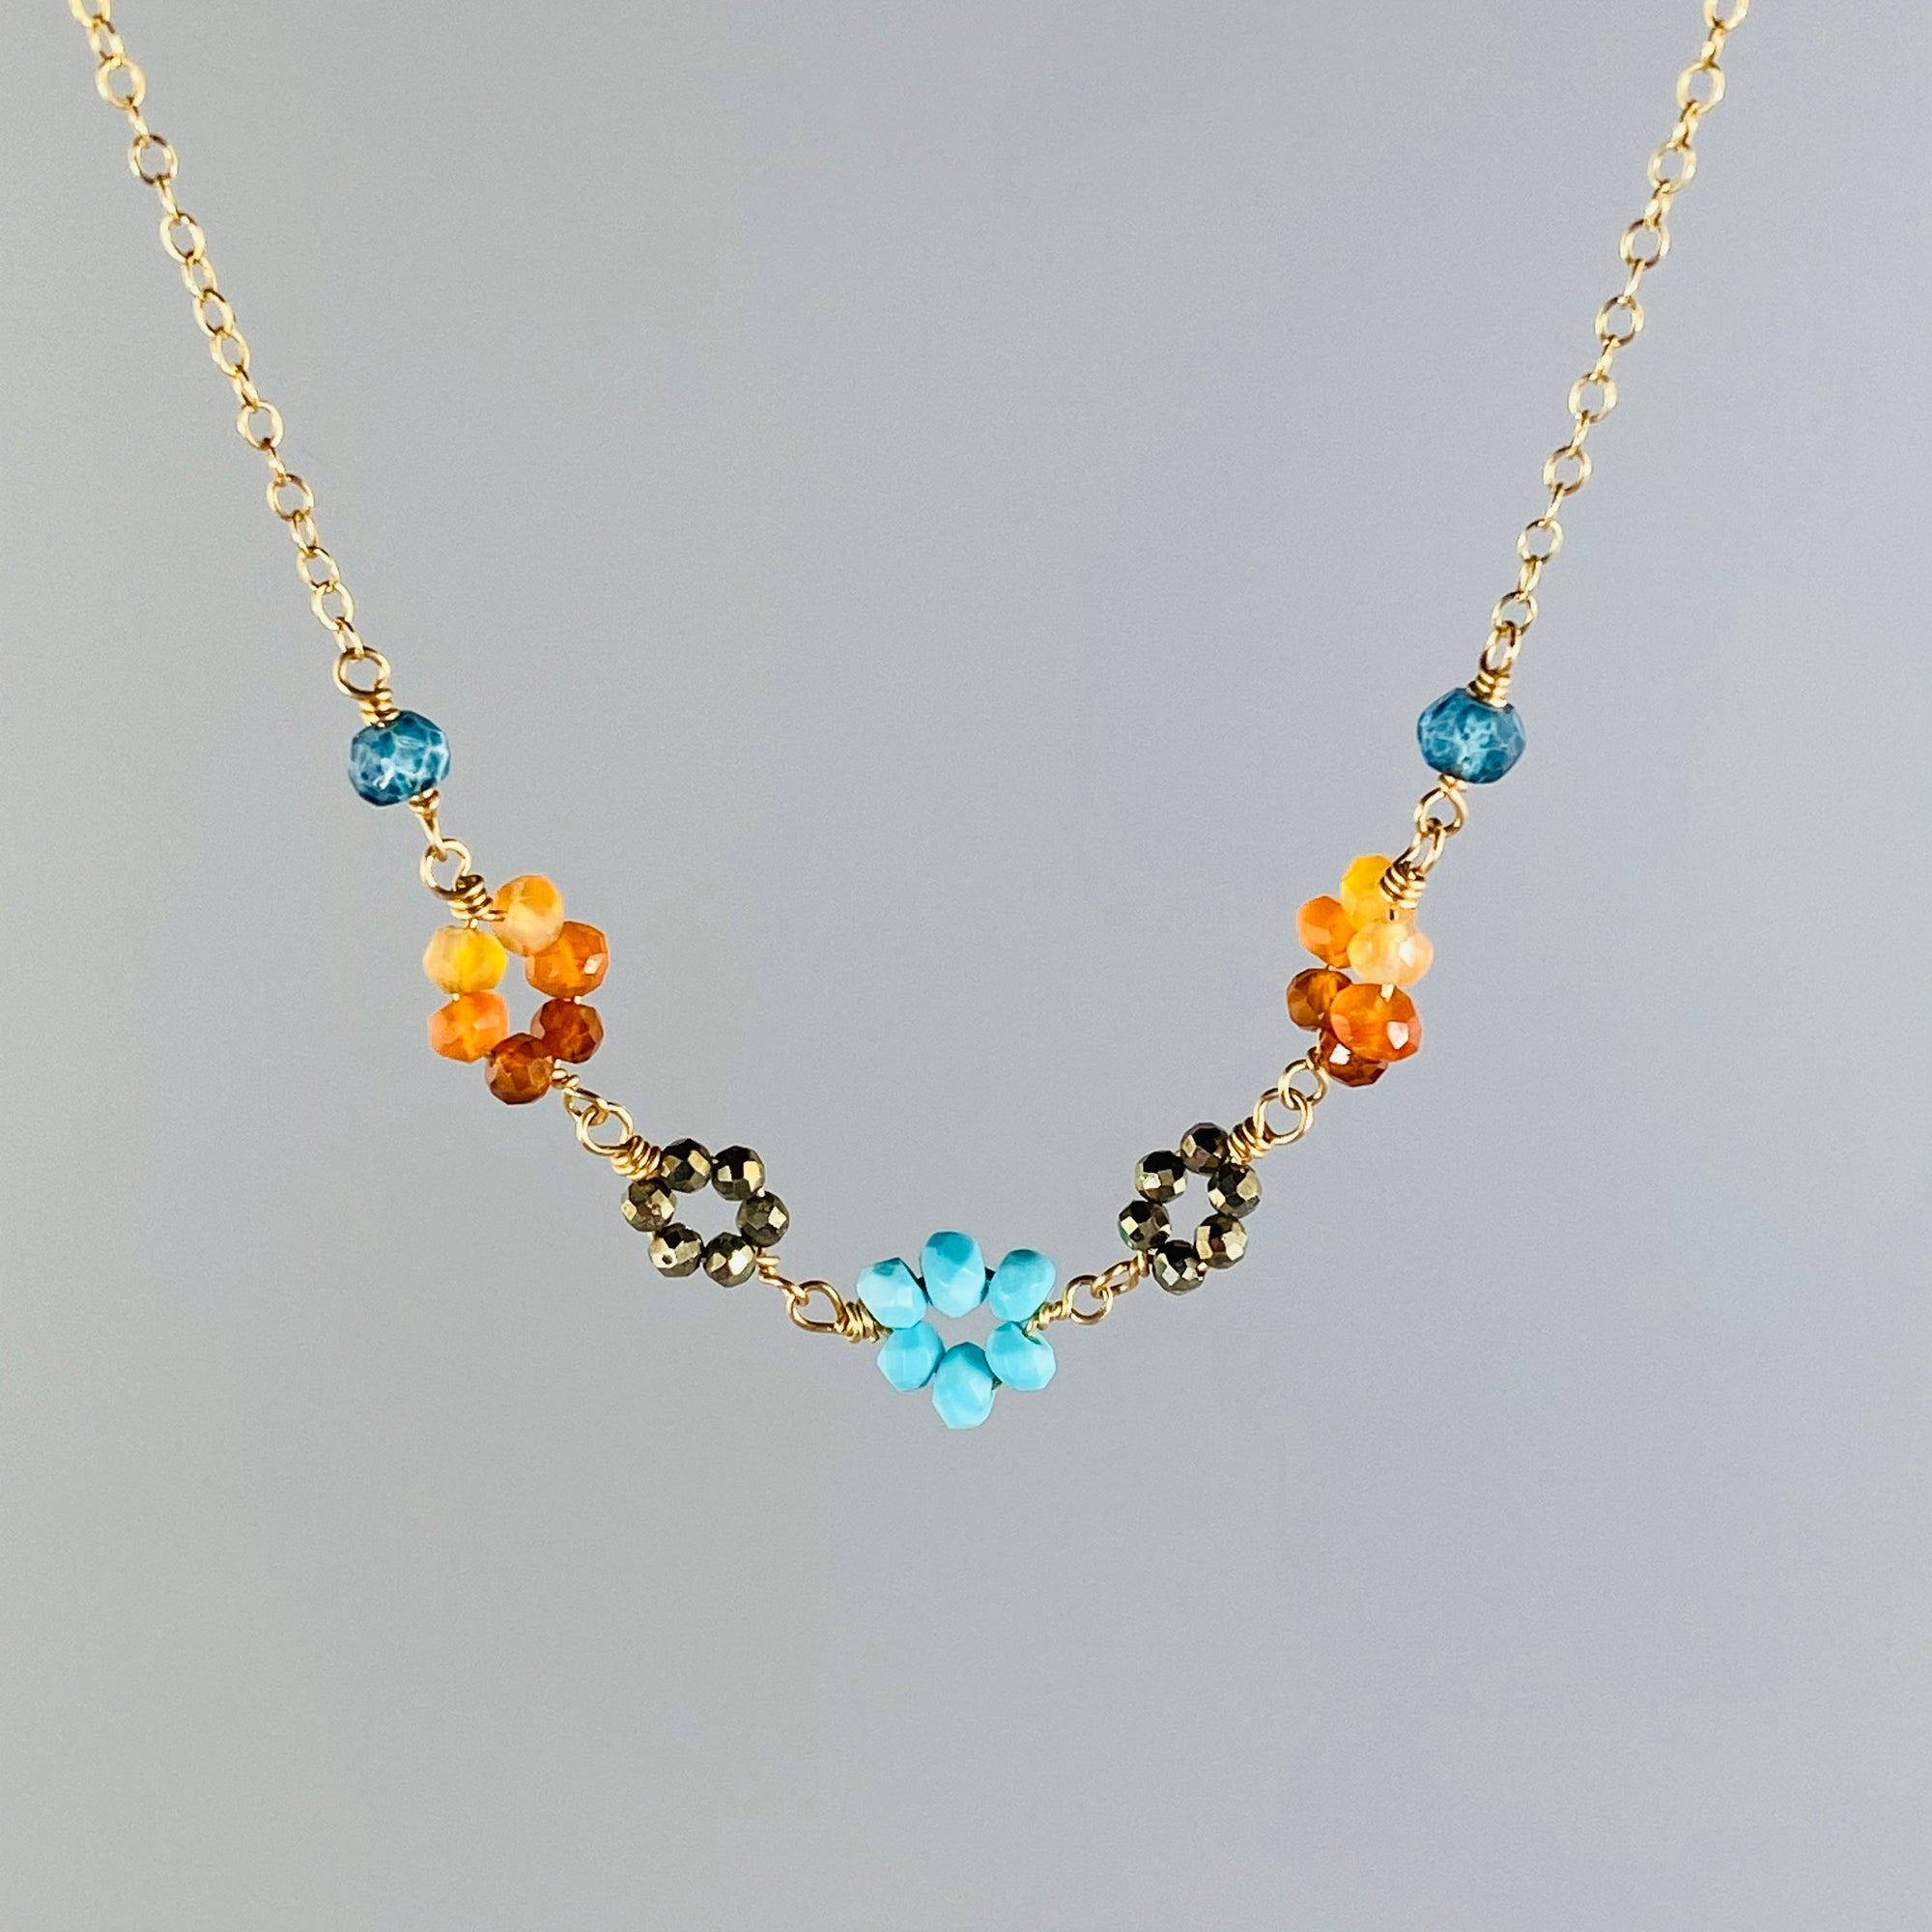 Desert Sky Flower Chain Necklace - Heart of the Home PA